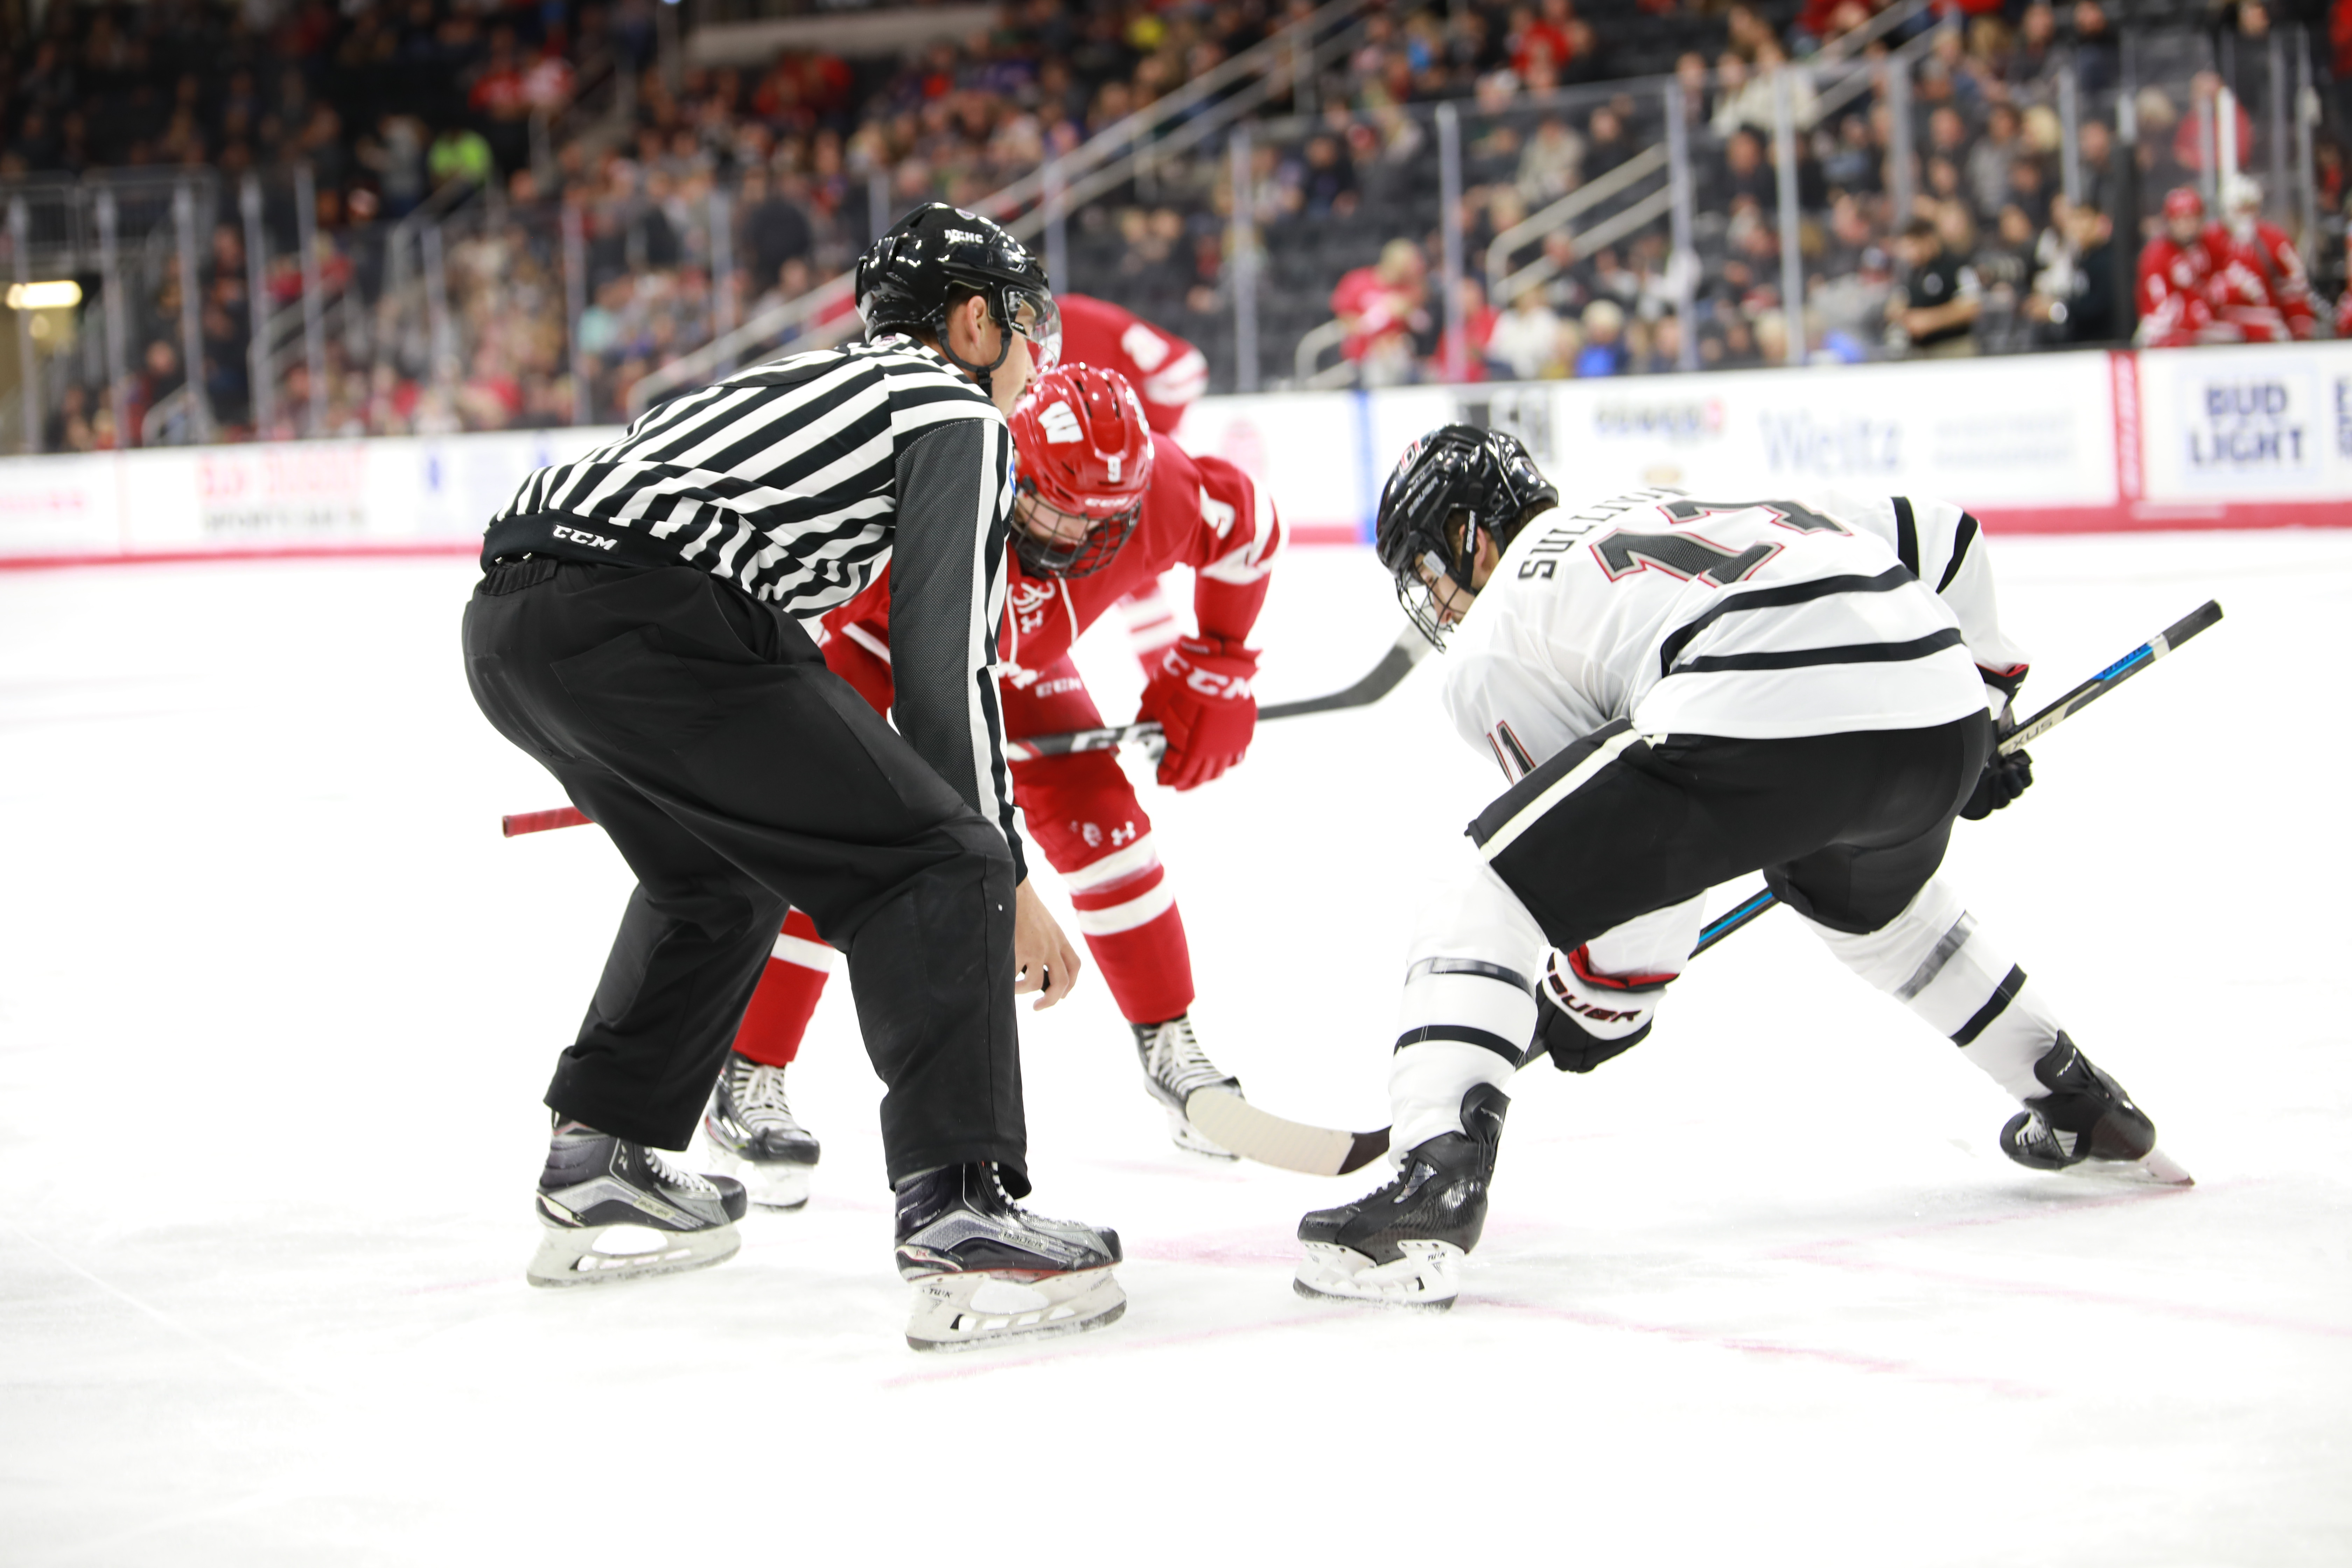 Two players face off on the ice